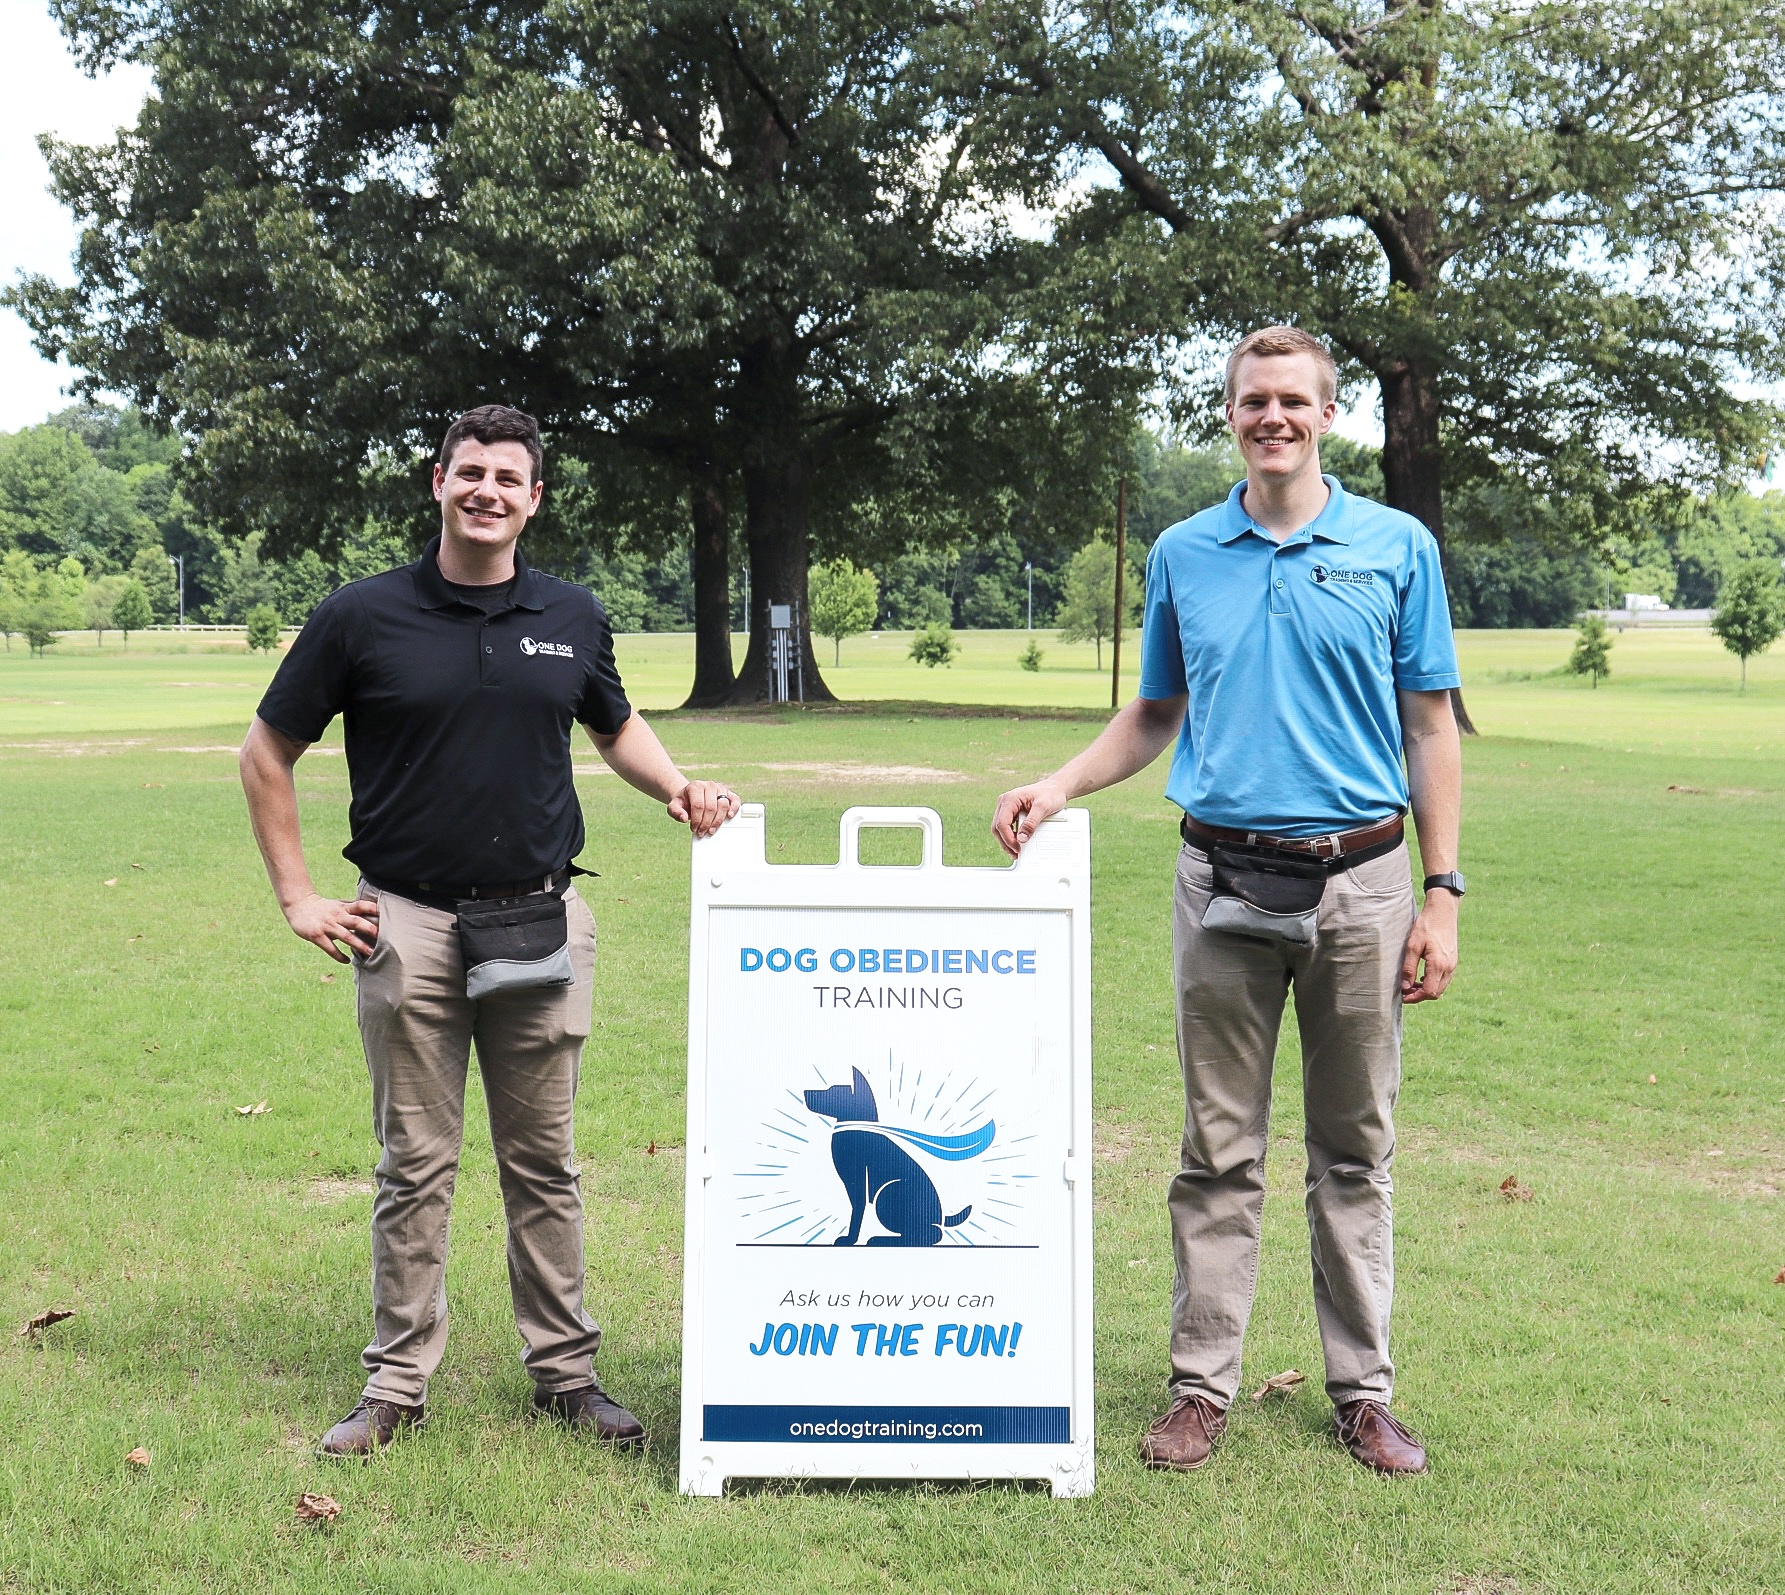 obedience_dog_trainers_germantown_bartlett_collierville_memphis_olivebranch